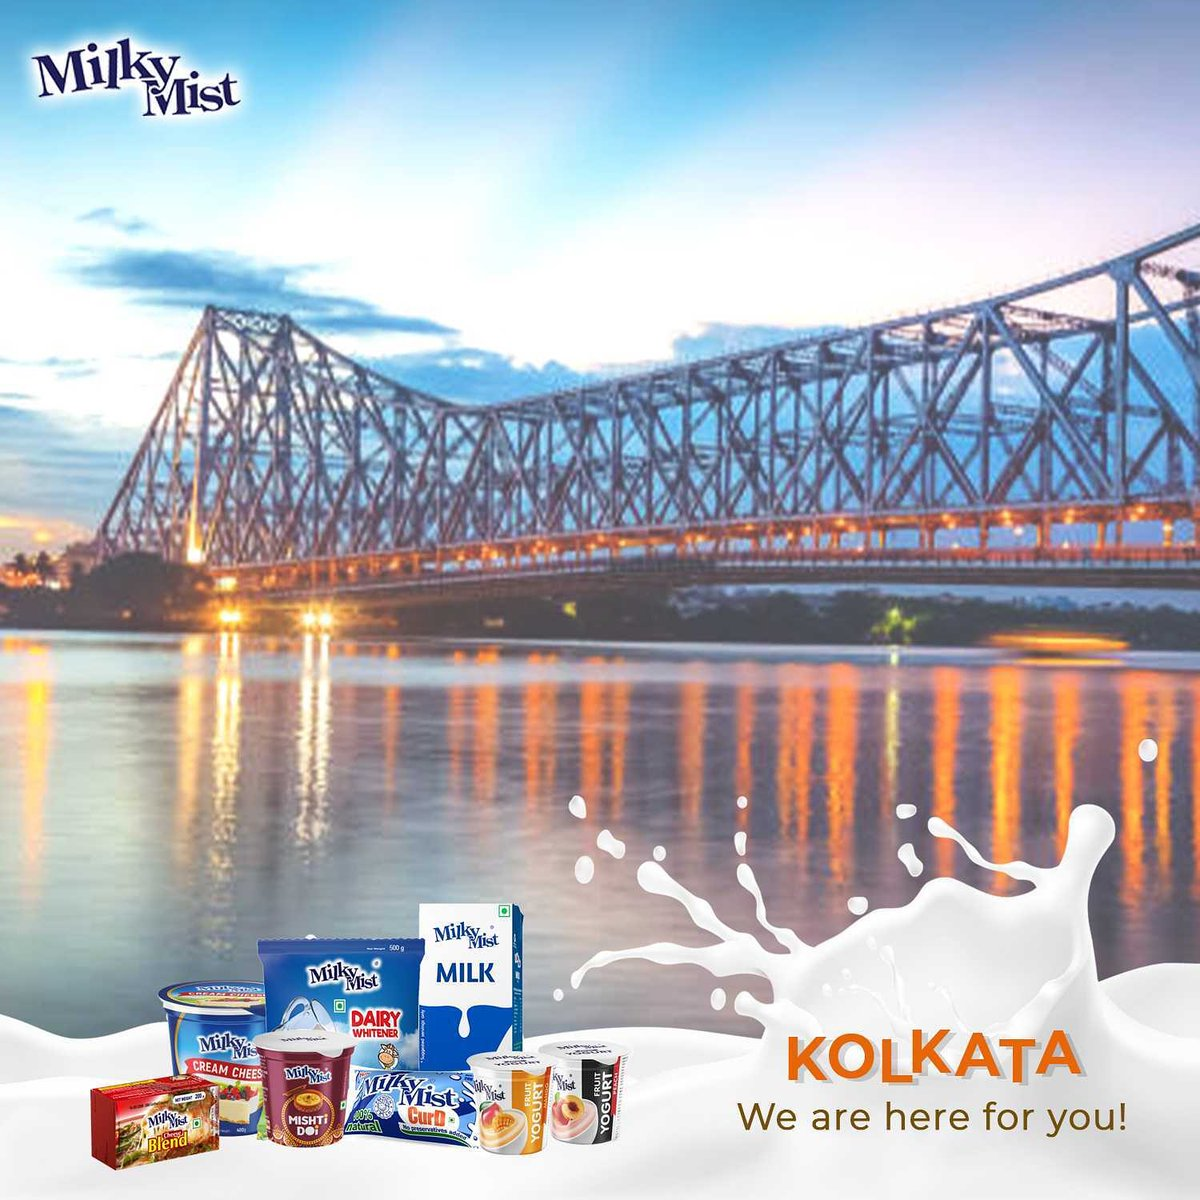 Yes, we made it to Kolkata! Get all your favourite Milky Mist products from your nearest stores now. #kolkata #kolkatafoodies #foodiesofkolkata #kolkatafood #Kolkatadairies #madeinindia #voiceforlocal #foodies #foodtalkkolkata #milkymistdairy #milkymist https://t.co/1BzWF8ogCp